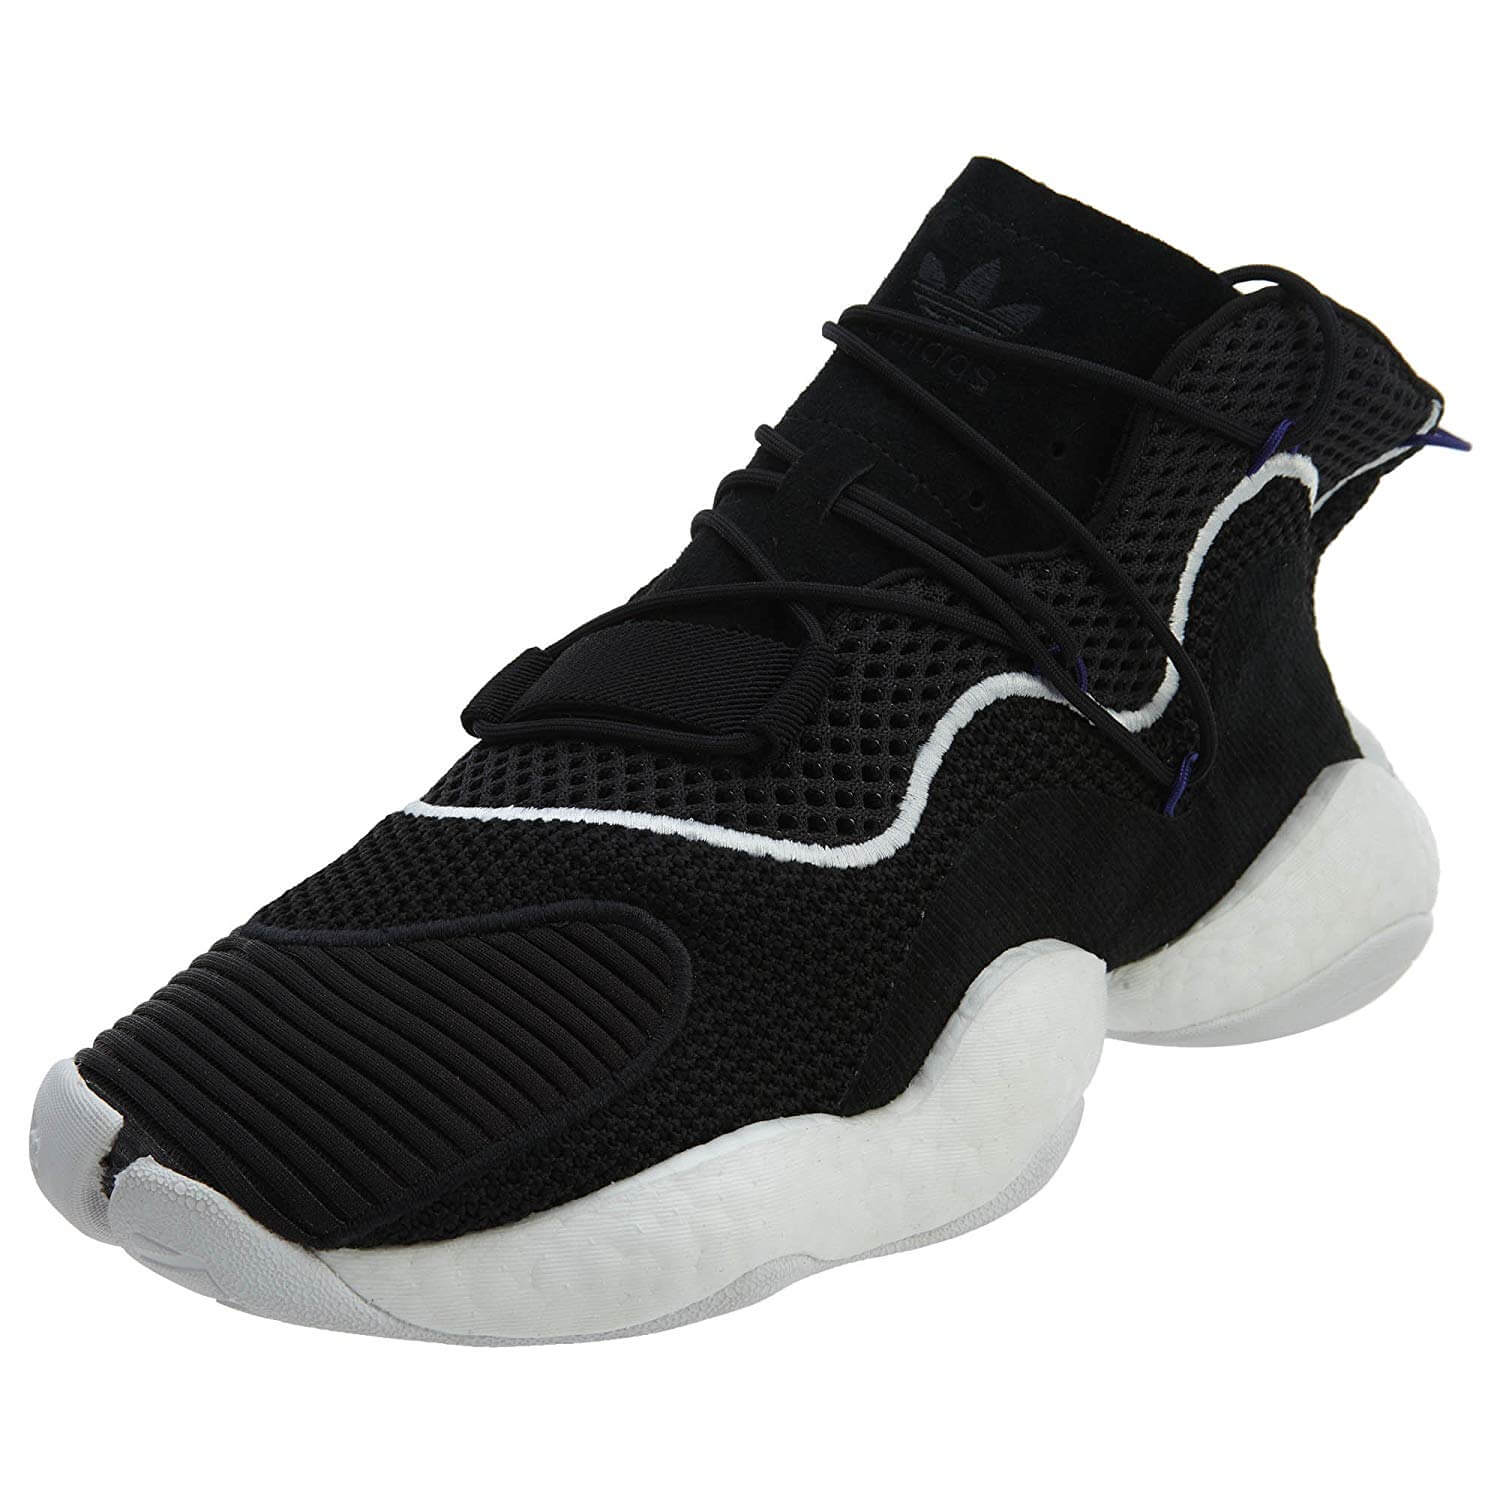 detailed look f1a91 c3615 Adidas Crazy BYW